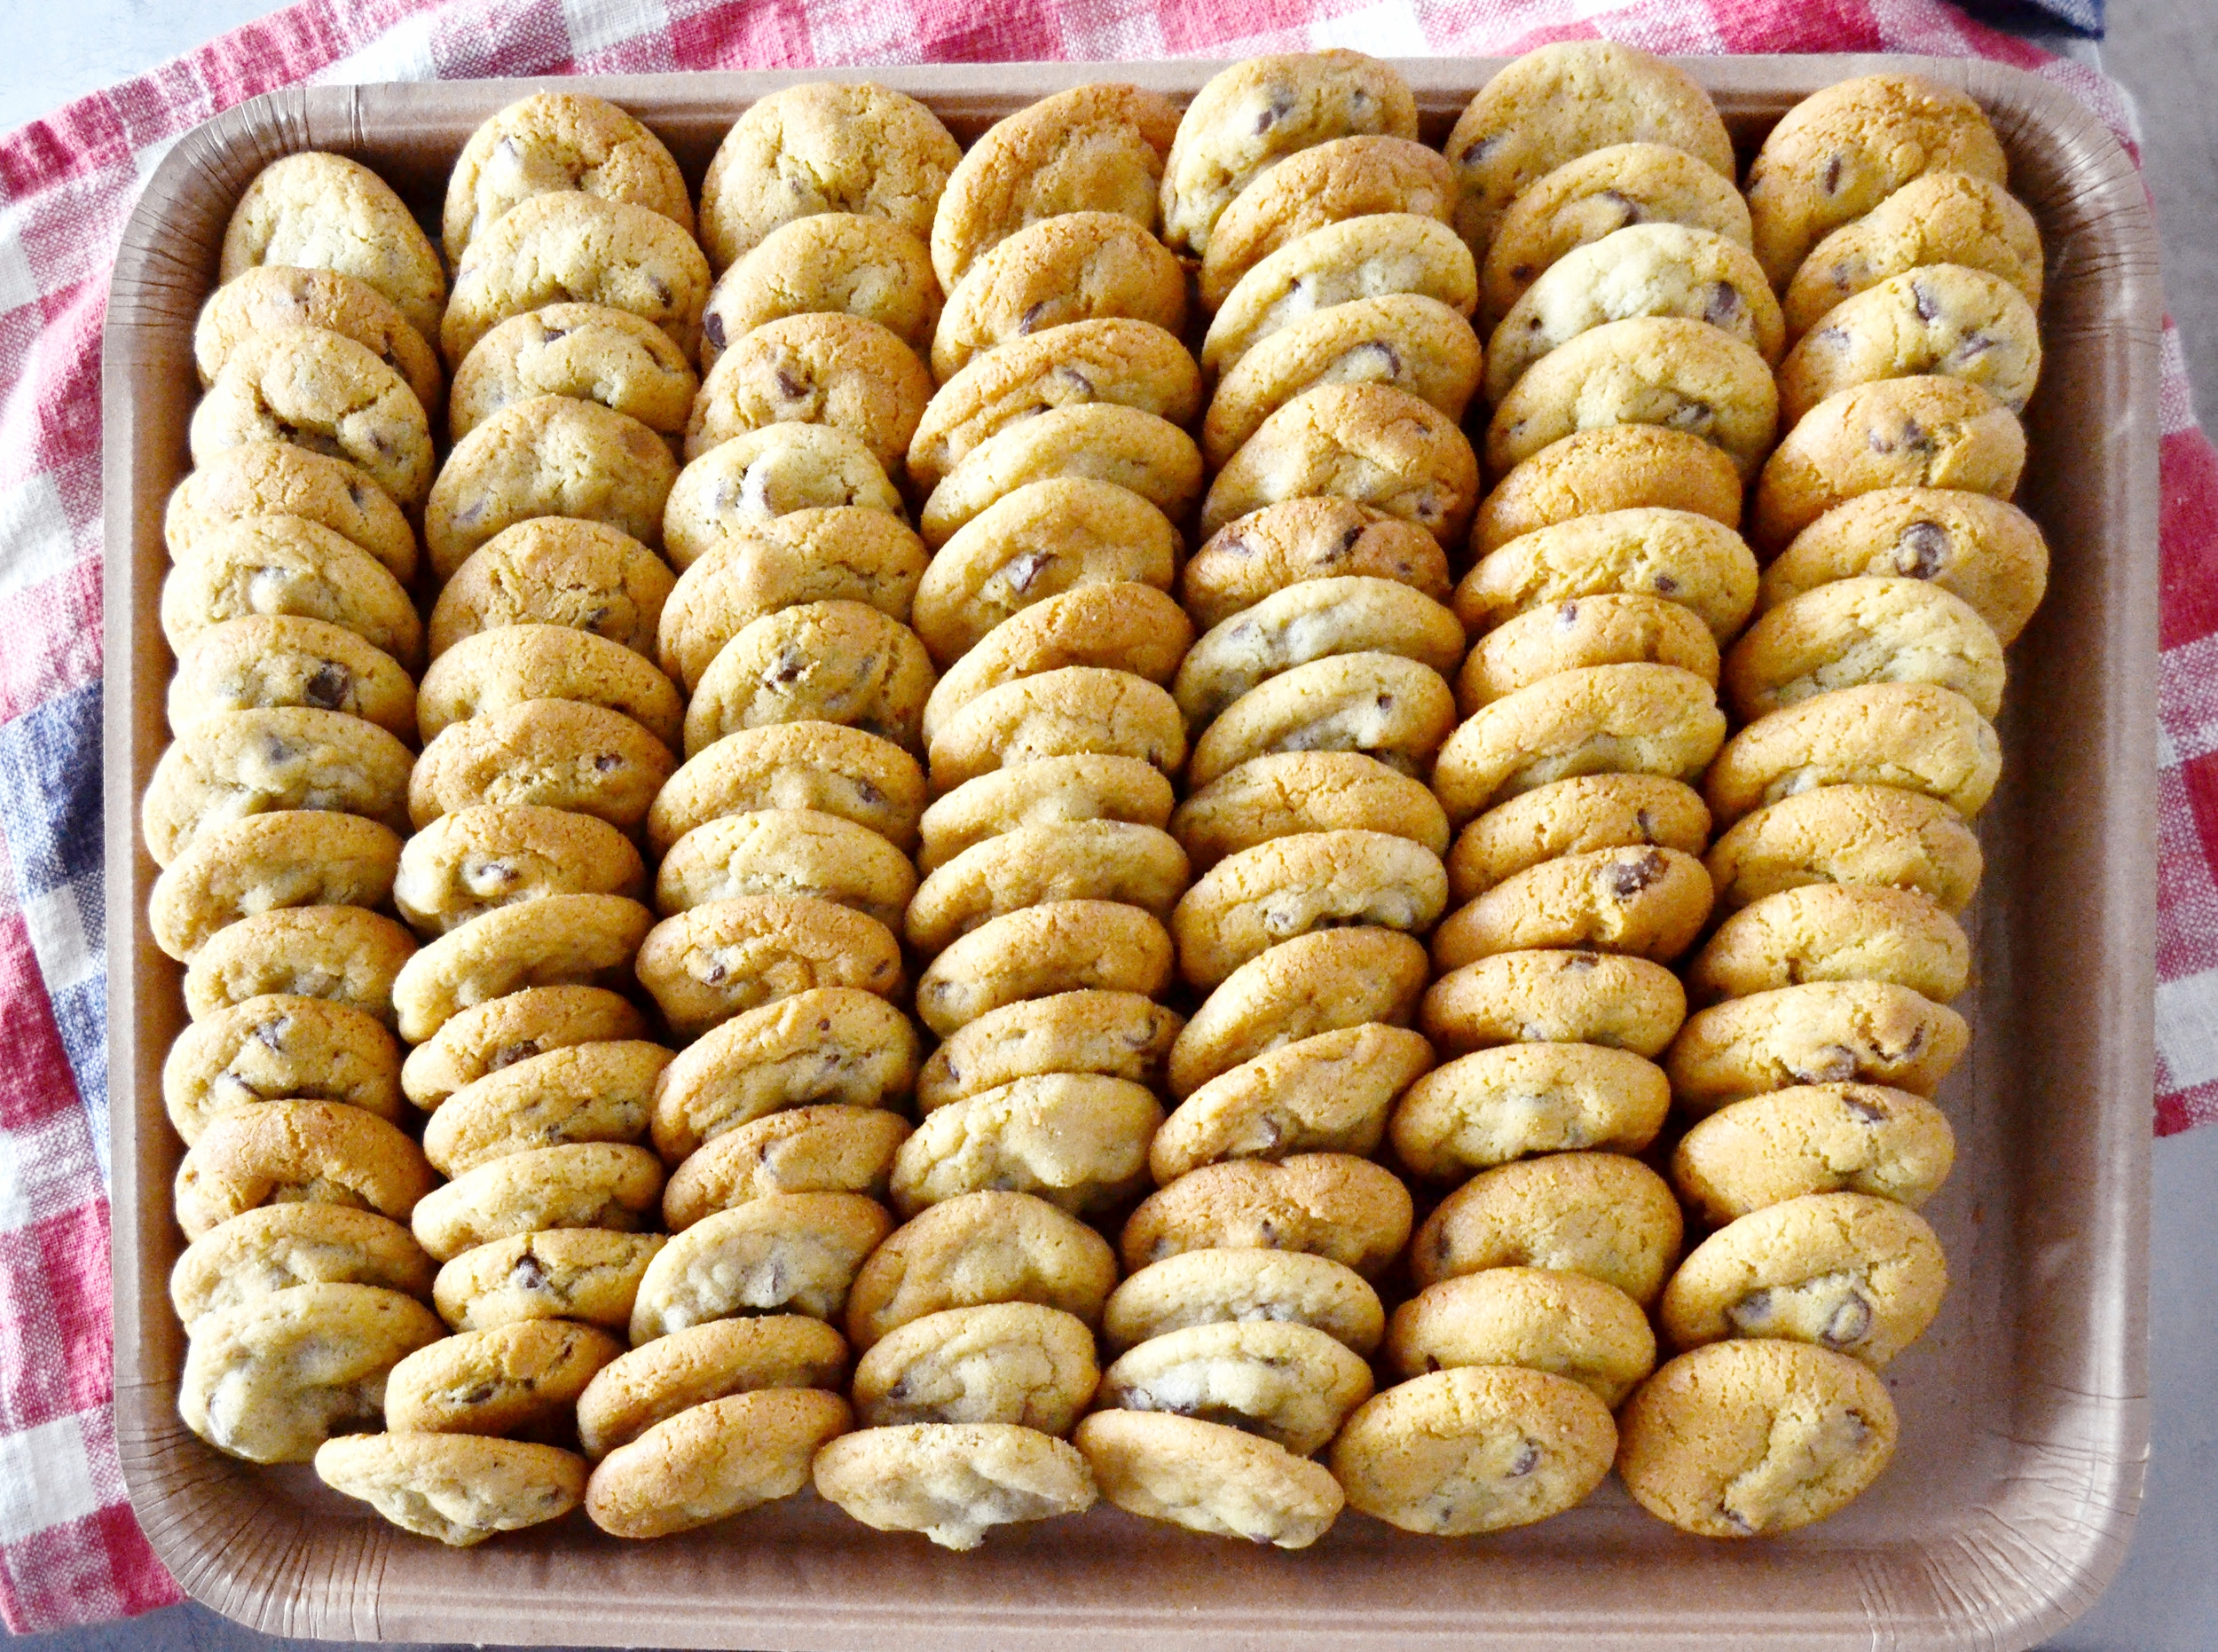 Chocolate Chip Cookie Catering Platter